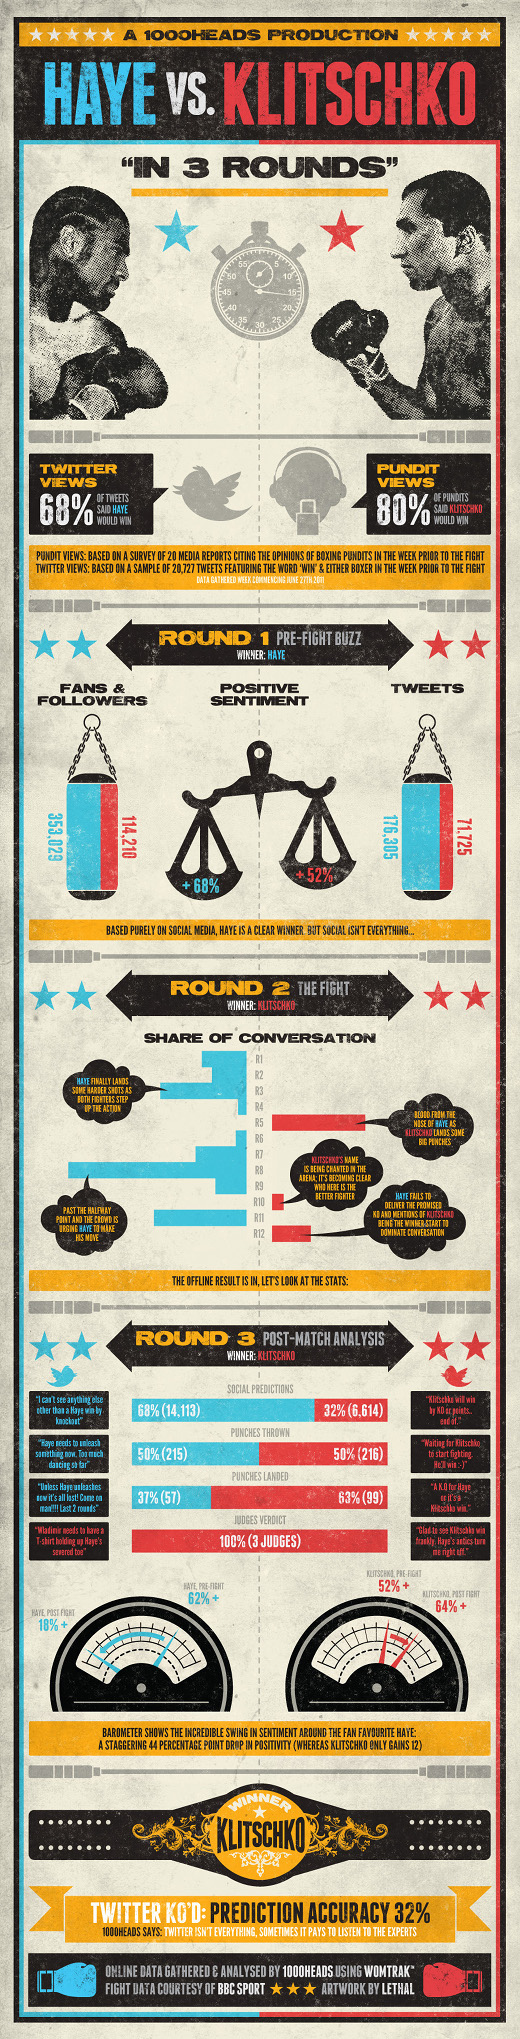 HayeFight InfographNEW3 small Haye vs Klitschko: Who won the social media fight? [Infographic]